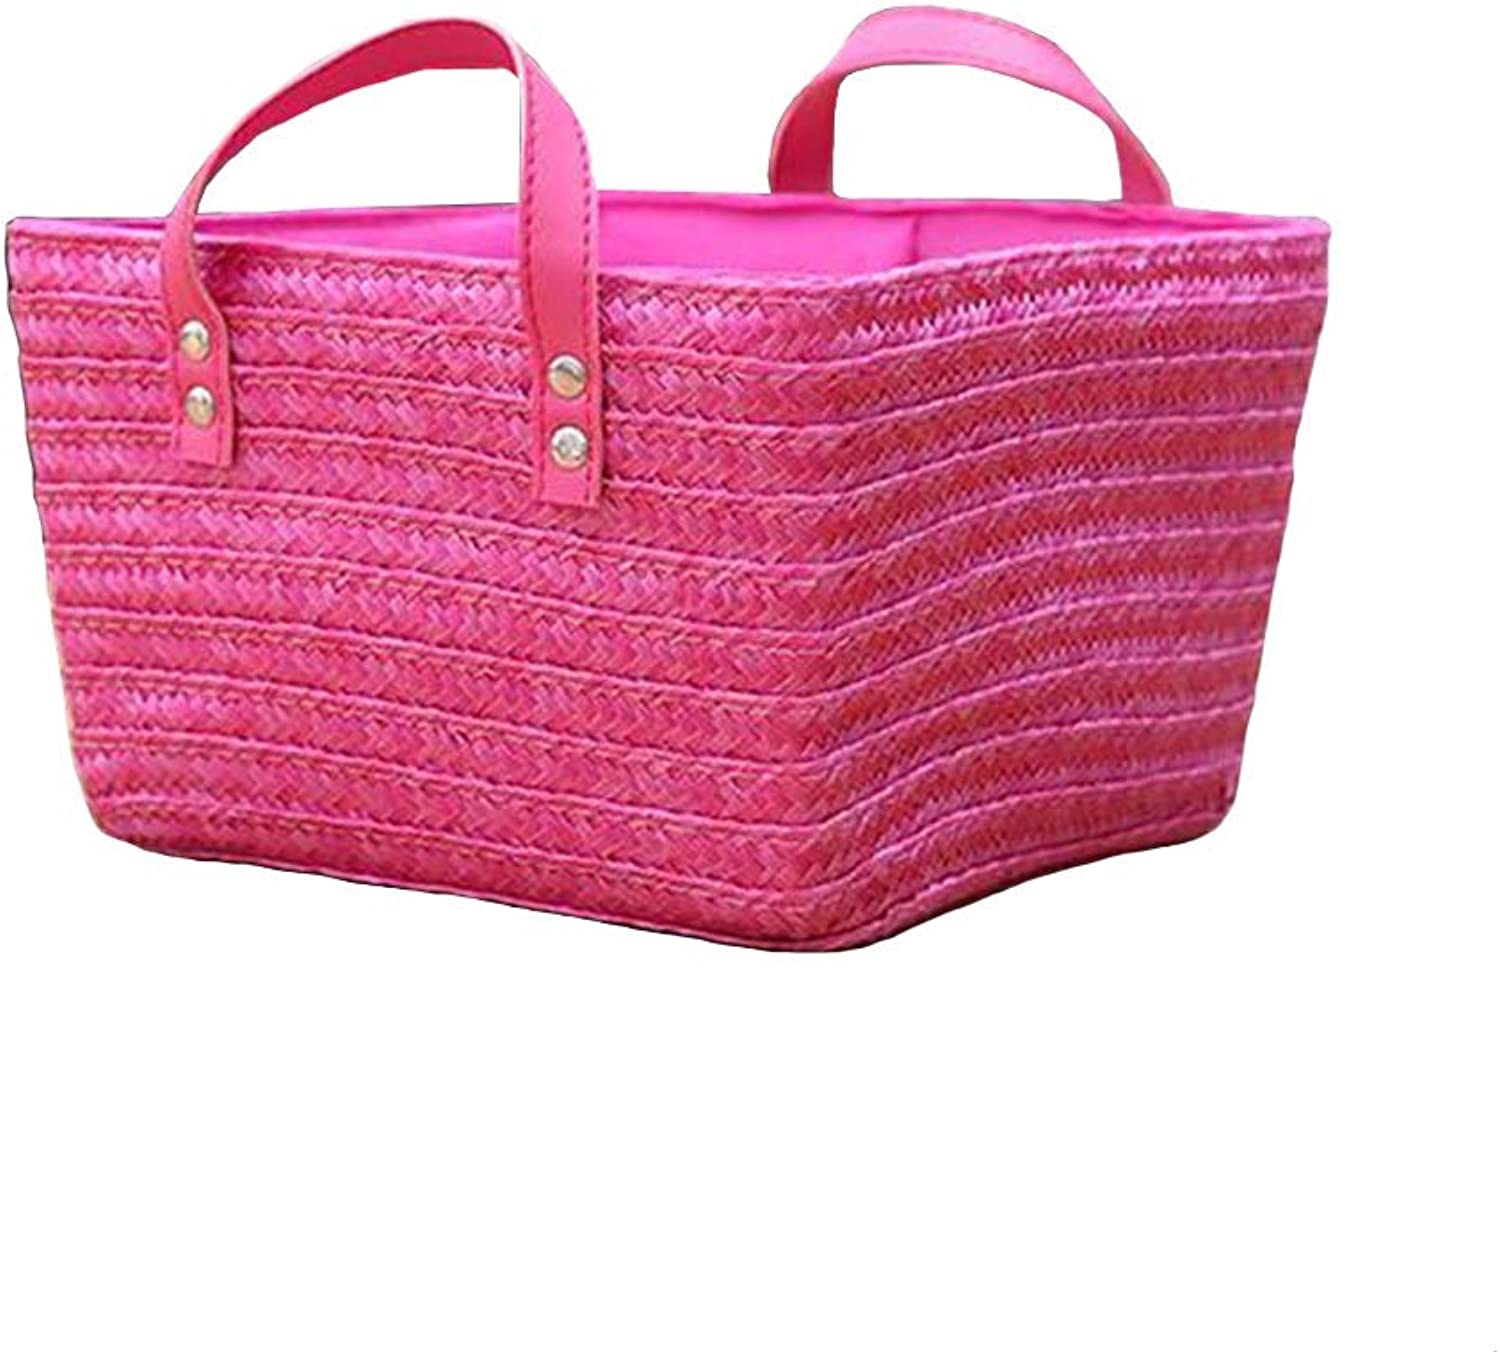 MUMA Storage Baskets Handle Easy Carrying Convenient Clothes Toys Container (color   Pink, Size   20x20x15cm)